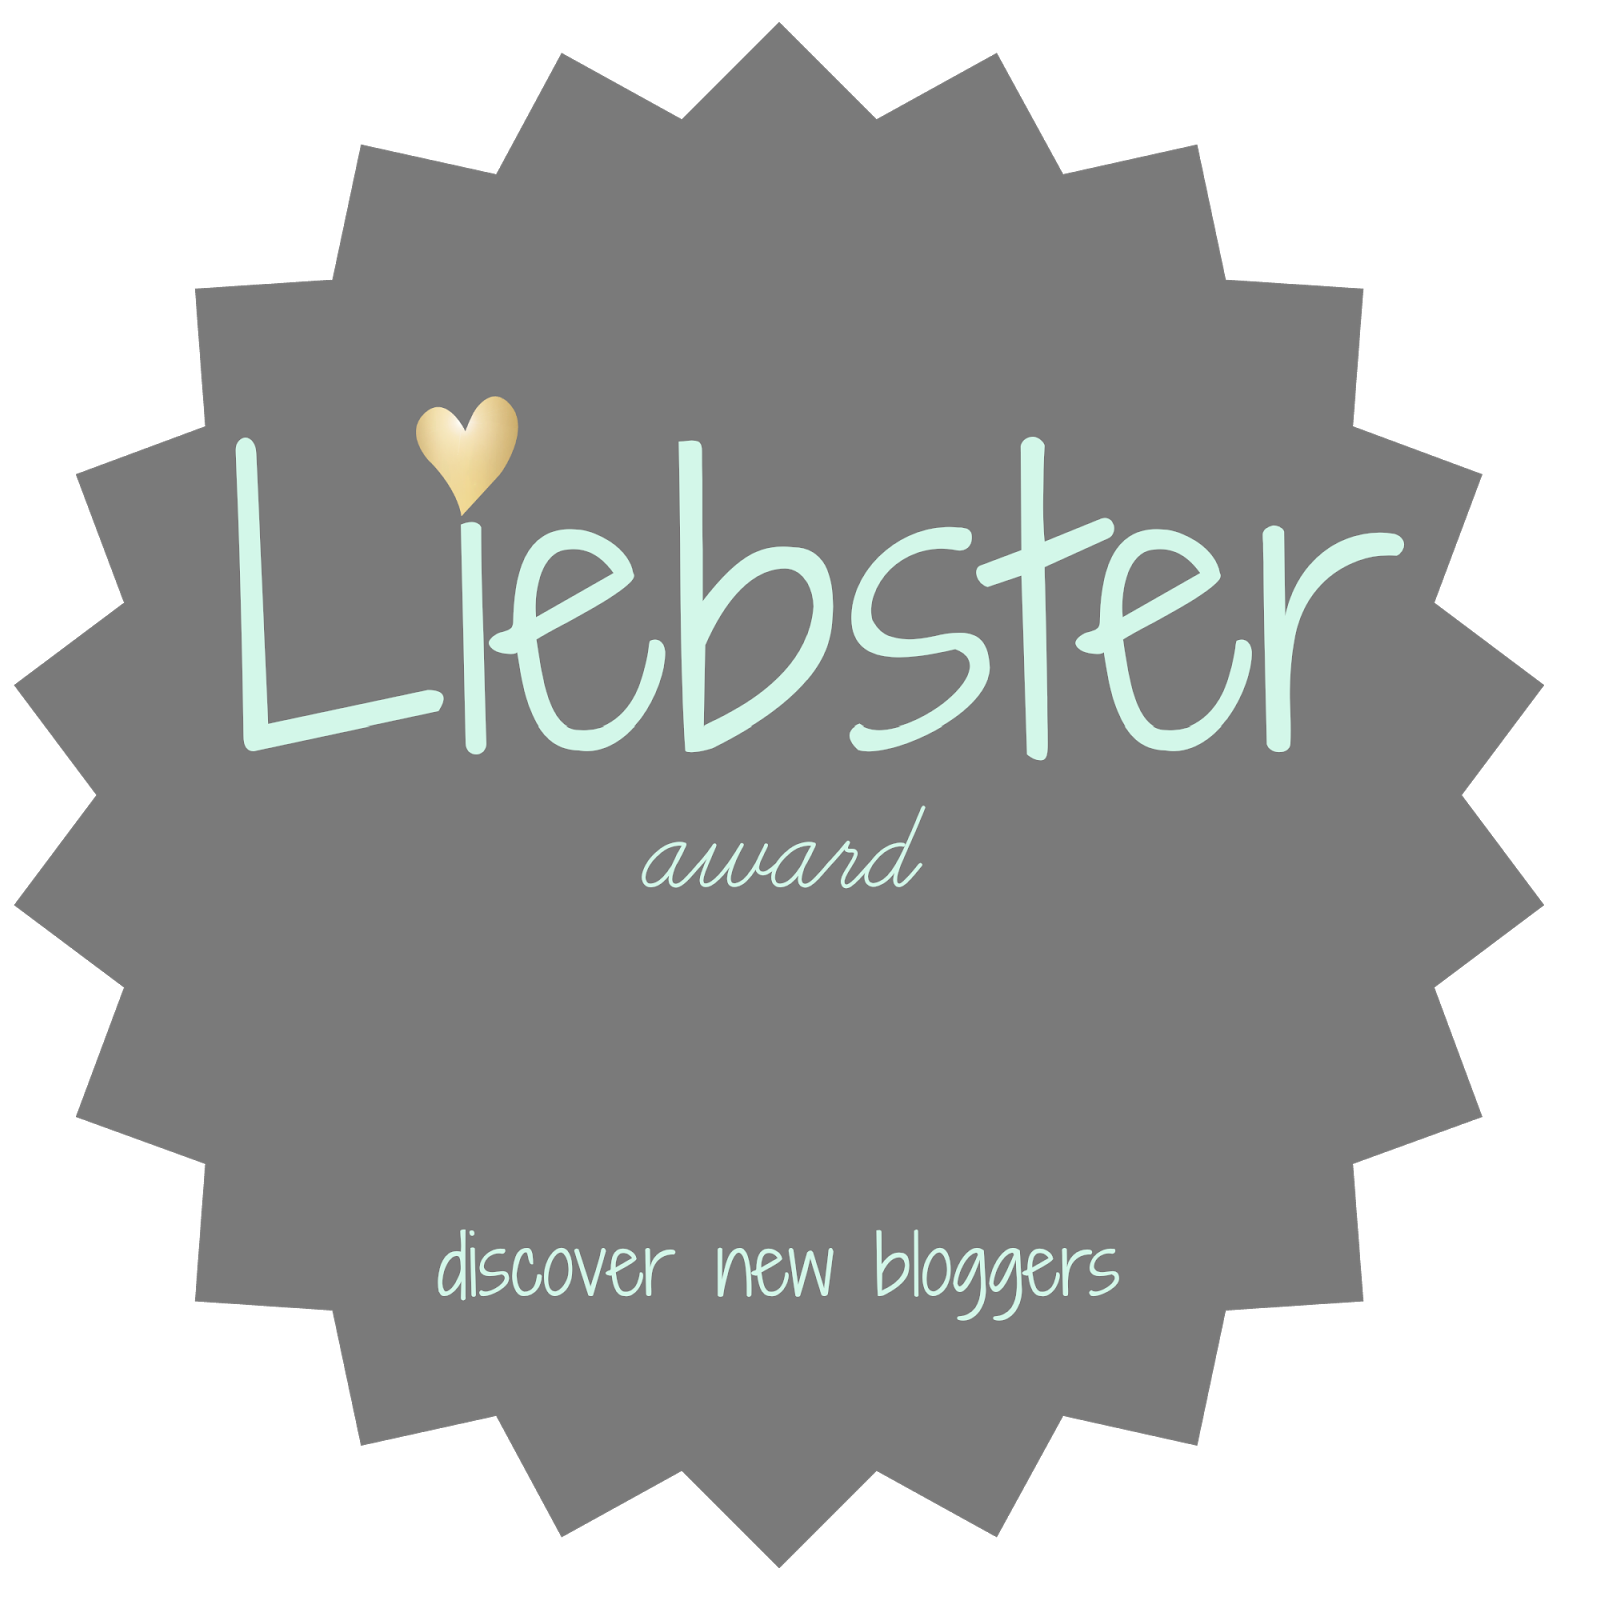 The Liebster Award 4 by Jessica Alicia